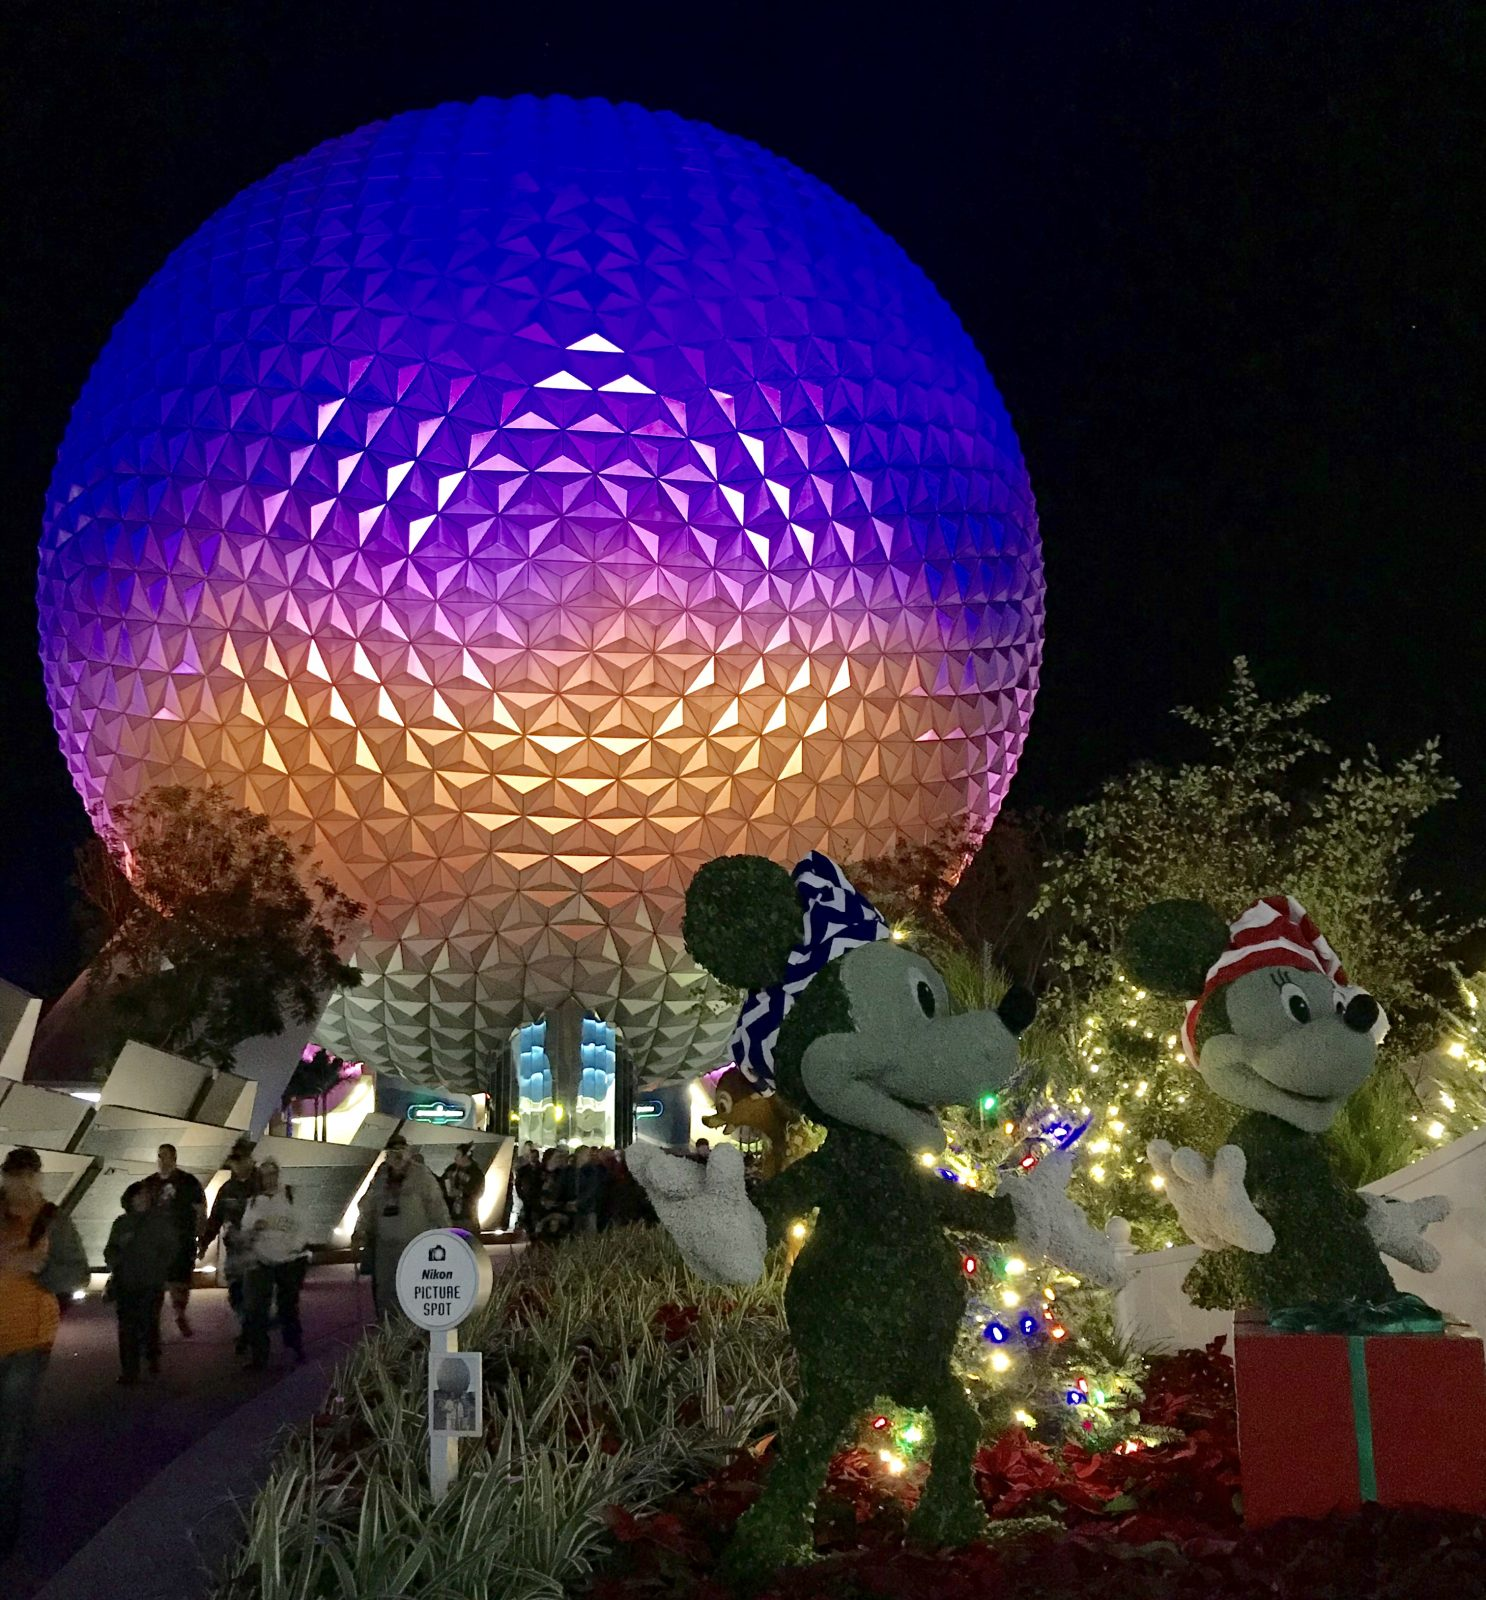 epcot's spaceship earth geosphere at night with mickey and minnie statues in the foreground